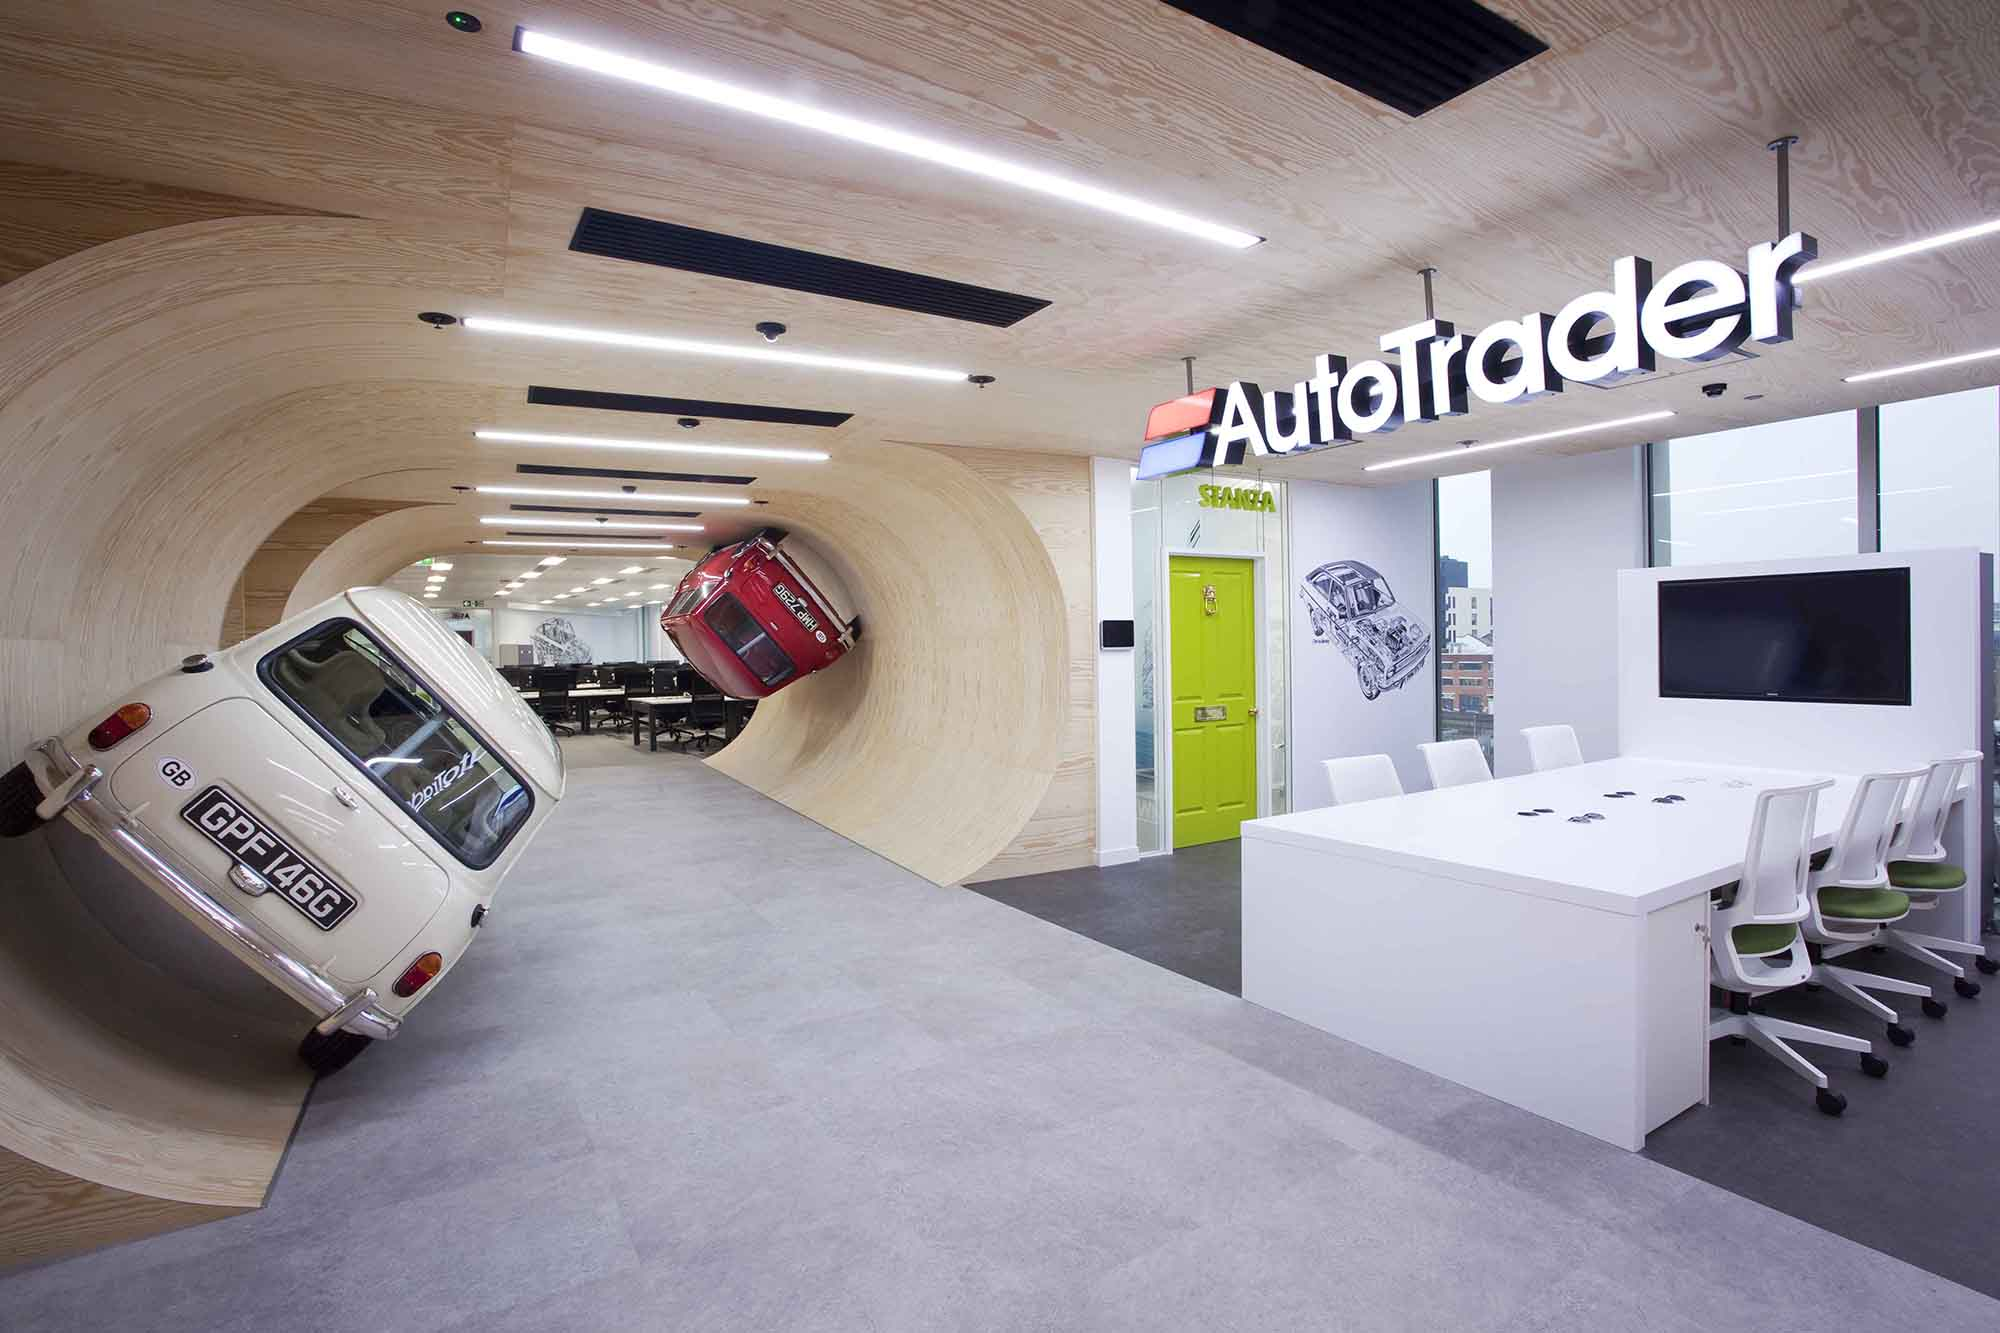 Building and Office Management - Autotrader Example